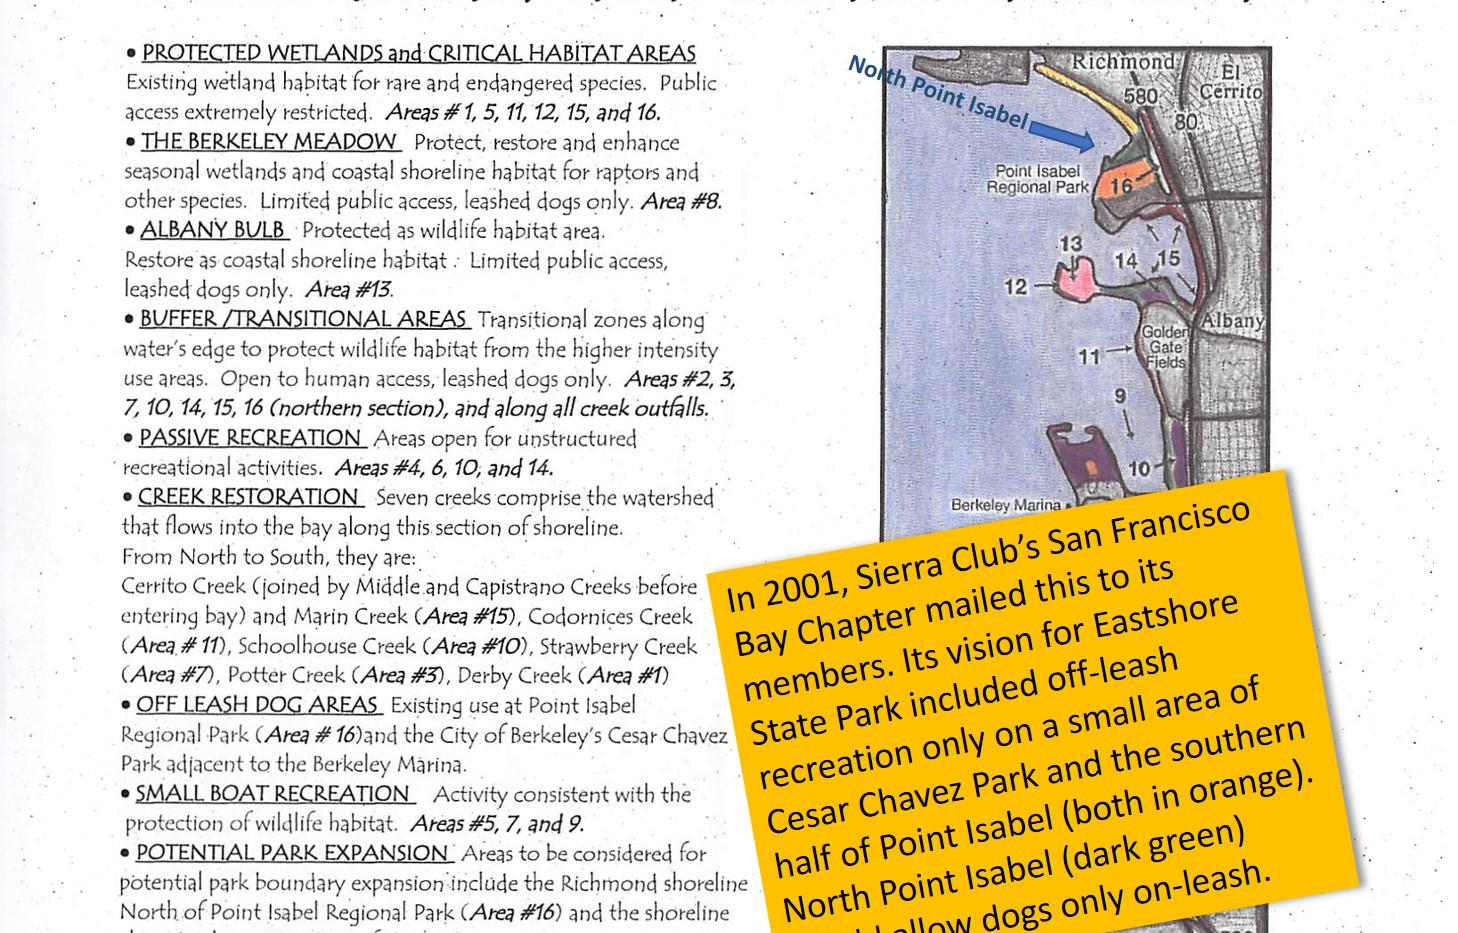 The Sierra Club vision for Nth PI was restricted recreation and no off-leash dogs